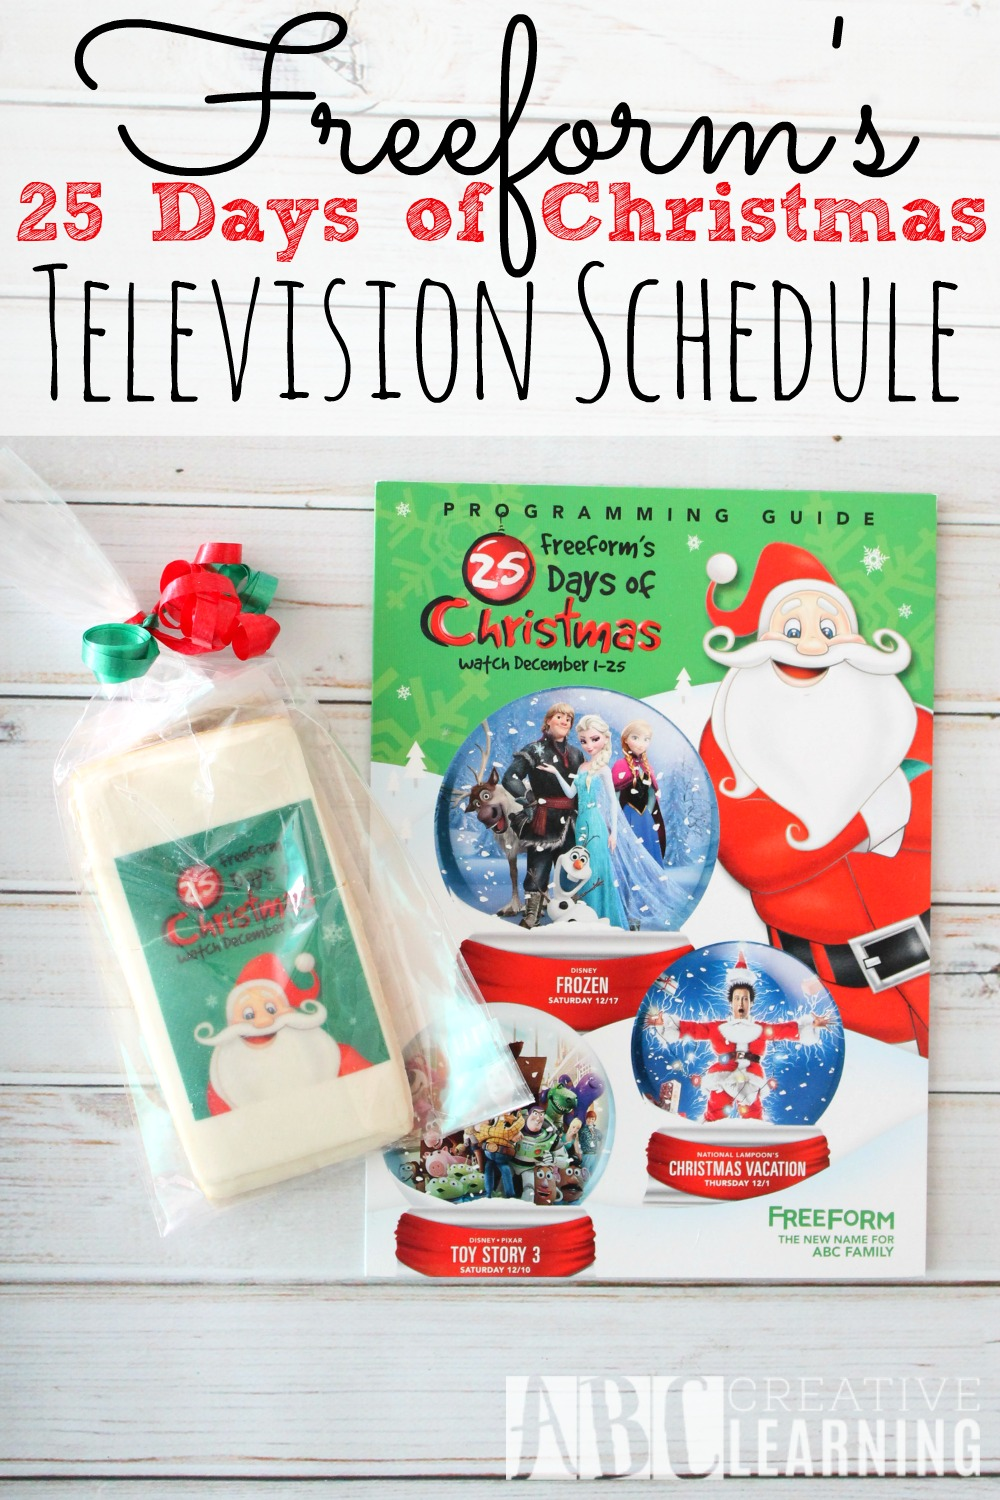 Freeform Christmas Schedule.Freeform S 25 Days Of Christmas Schedule 25daysofchristmas